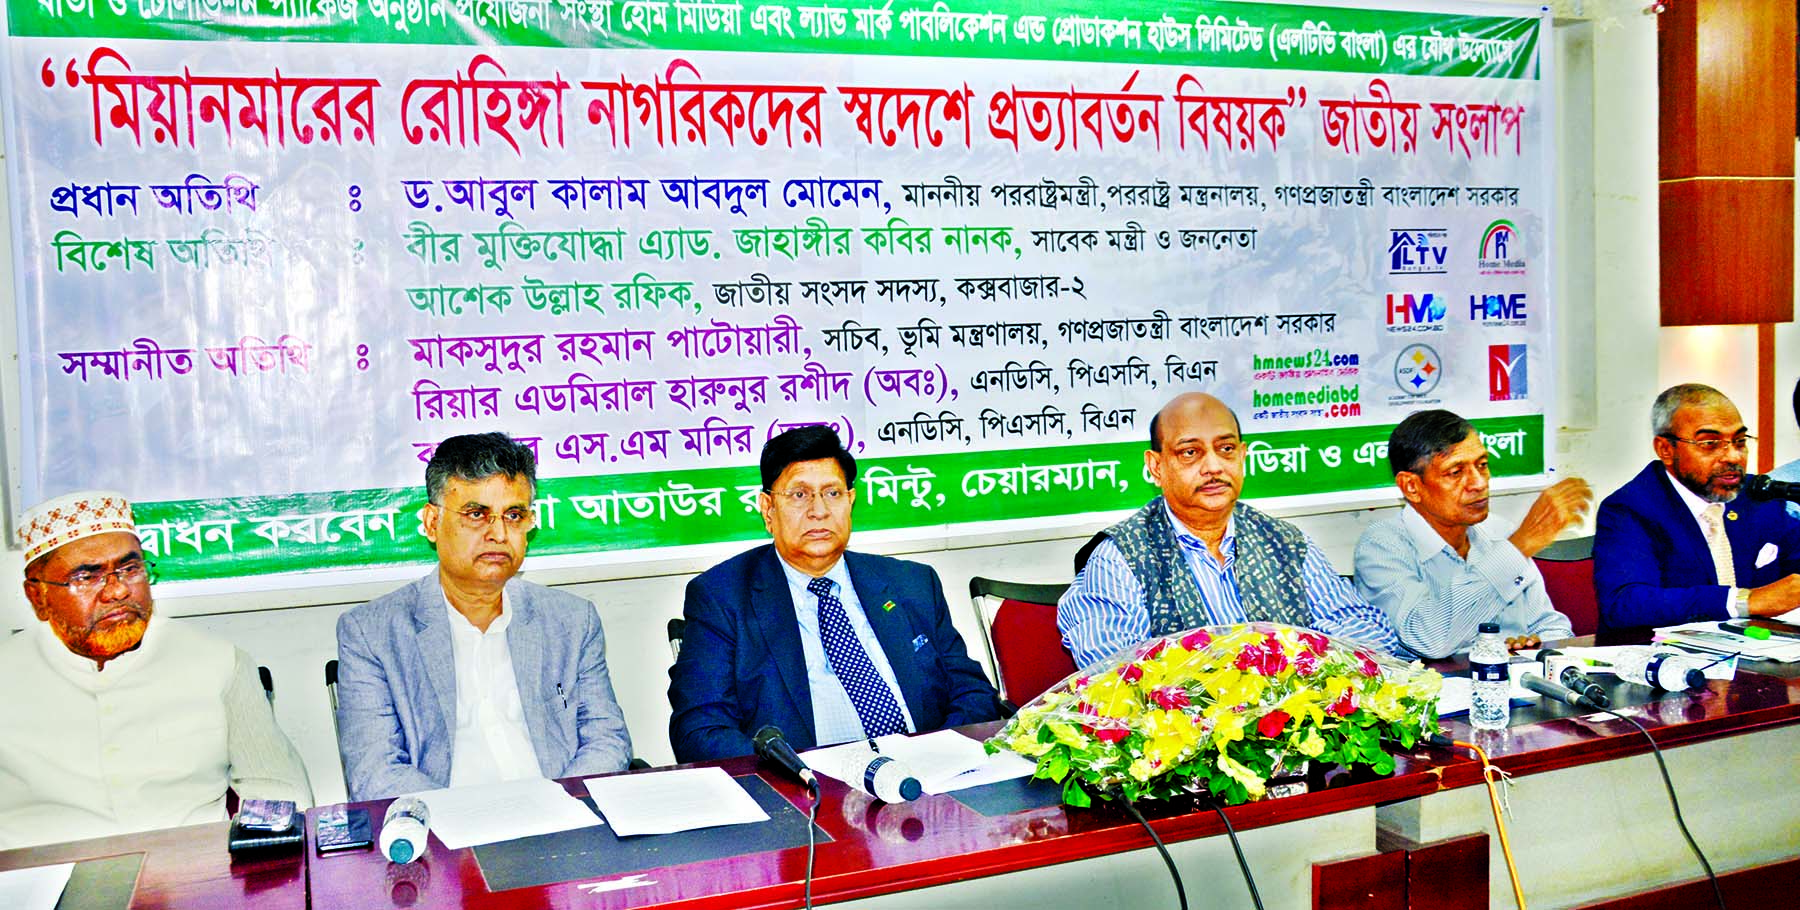 Foreign Minister Dr. Abul Kalam Abdul Momen, among others, at  a dialogue on 'Rohingya Repatriation' organised by various institutions at the Jatiya Press Club on Wednesday.